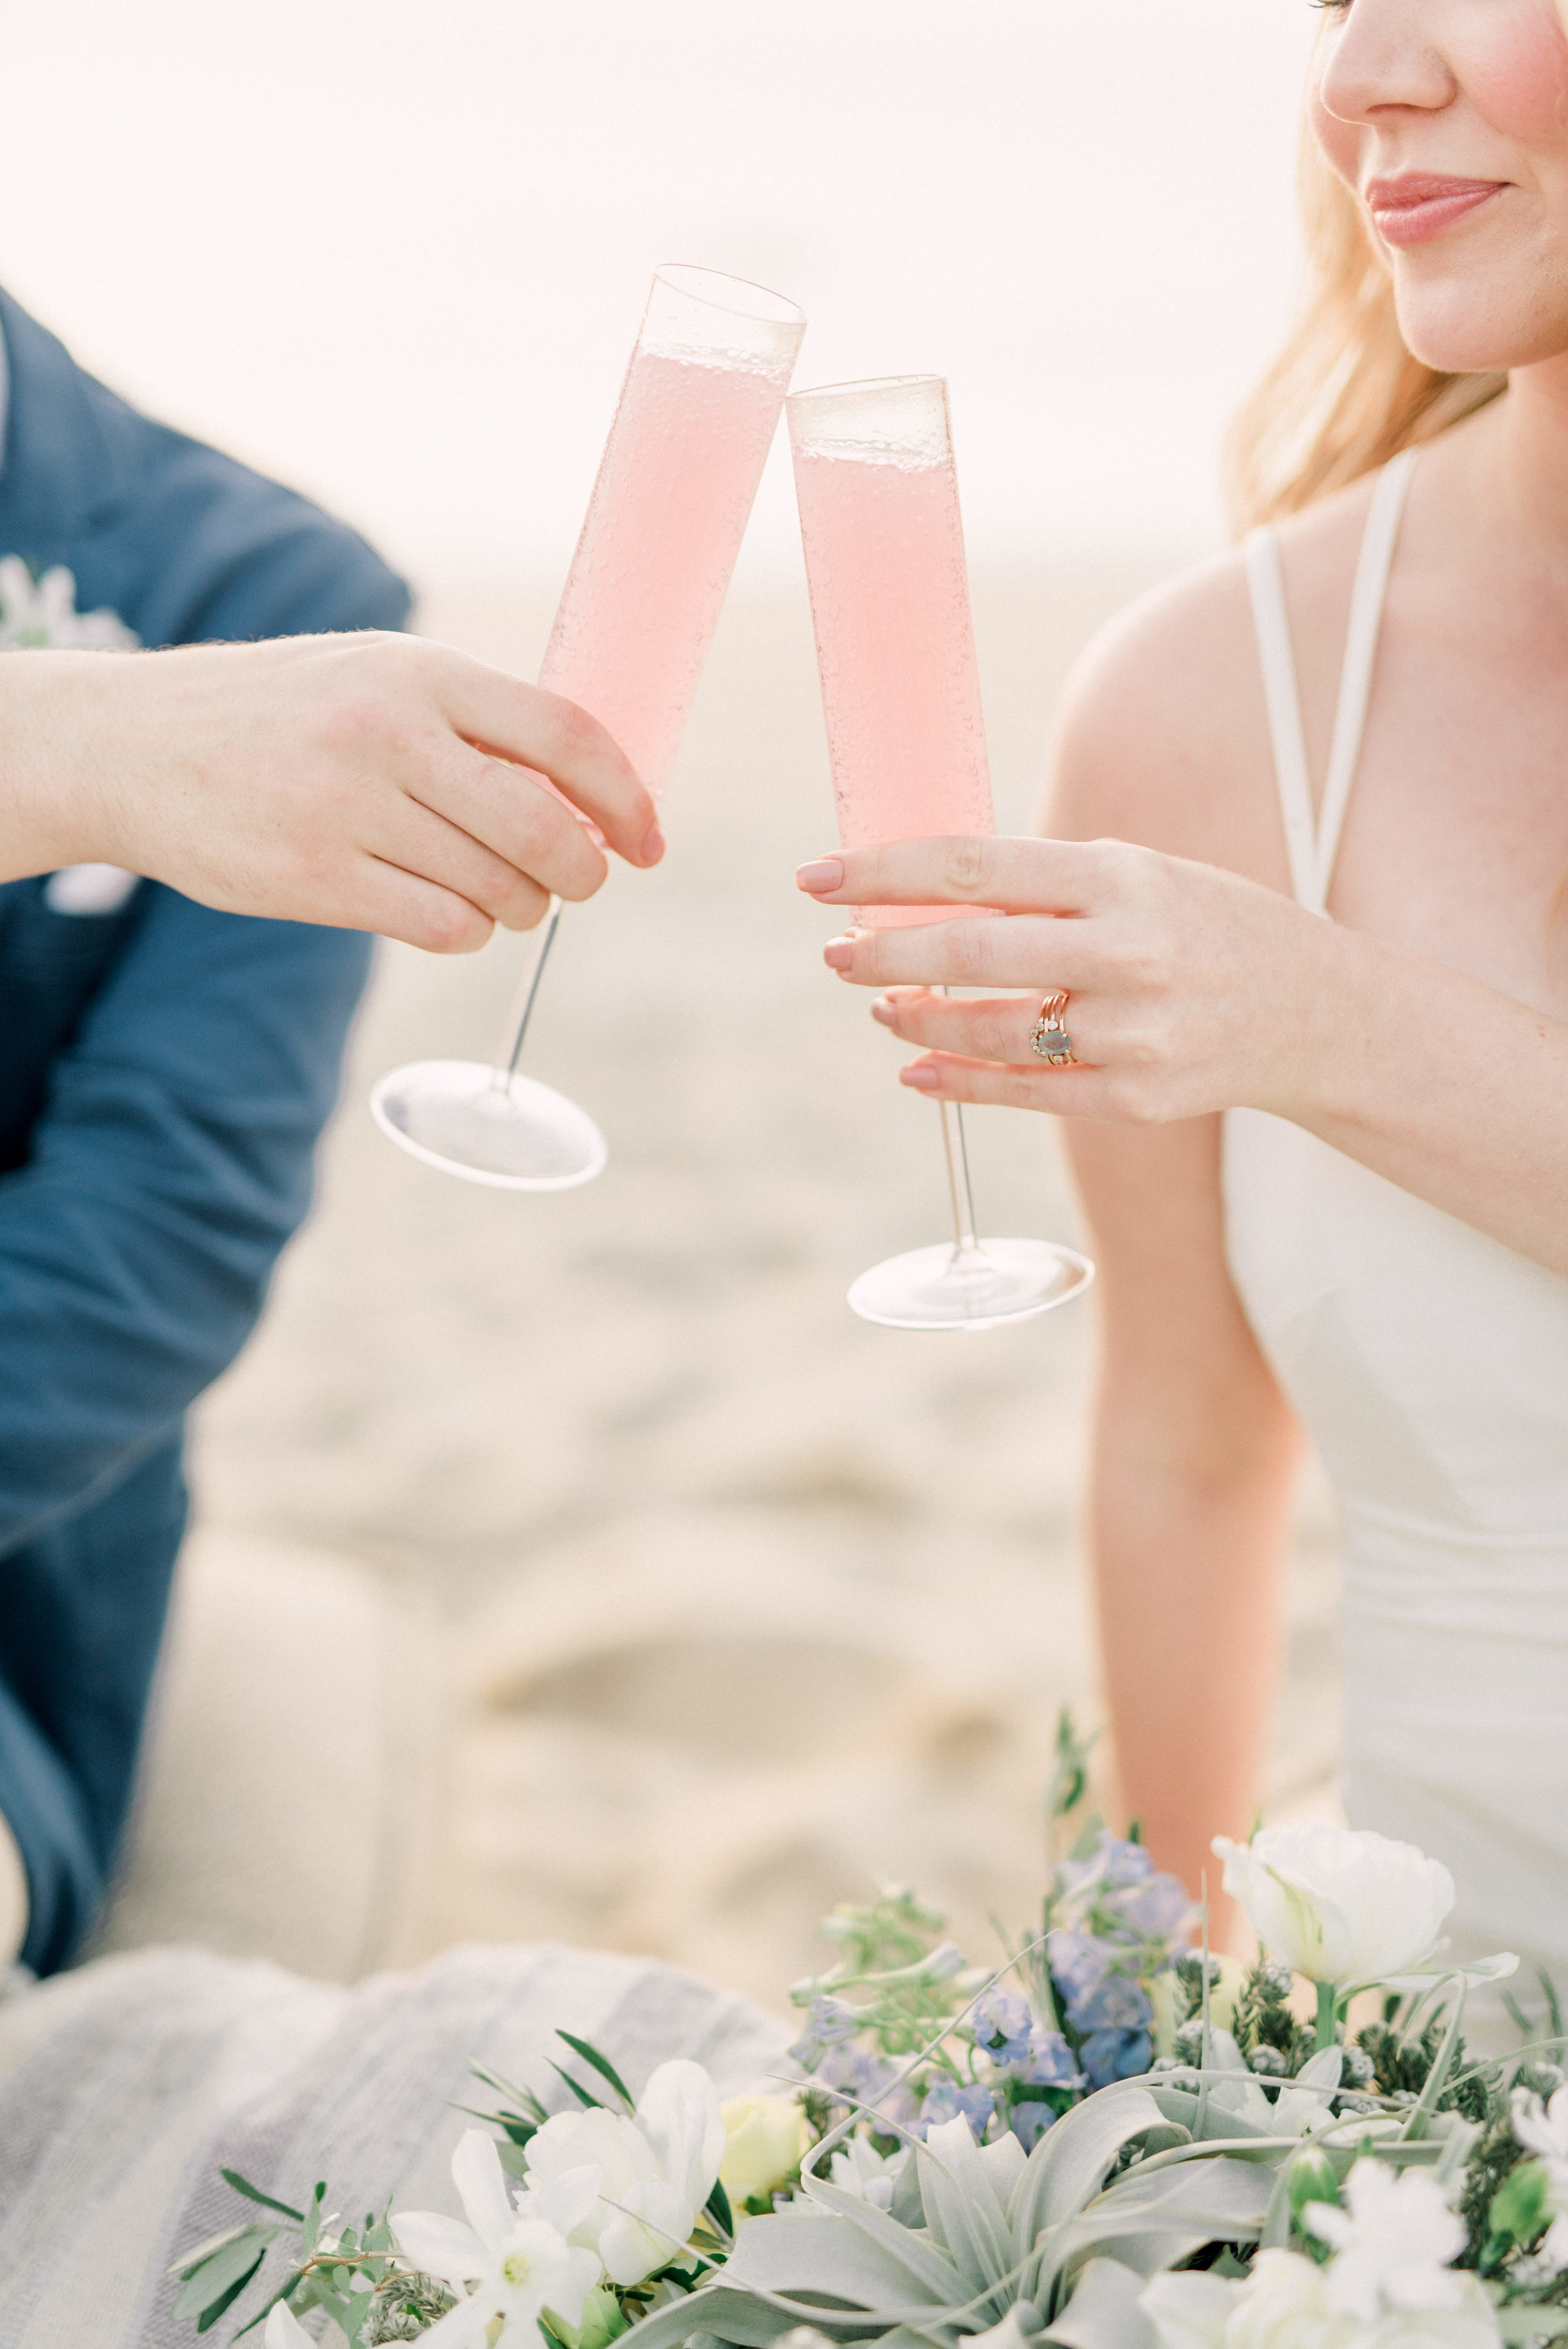 haley-richter-photography-clover-event-co-cape-may-new-jersey-wedding-elopement-at-congress-hall-sea-glass-inspired-089.jpg